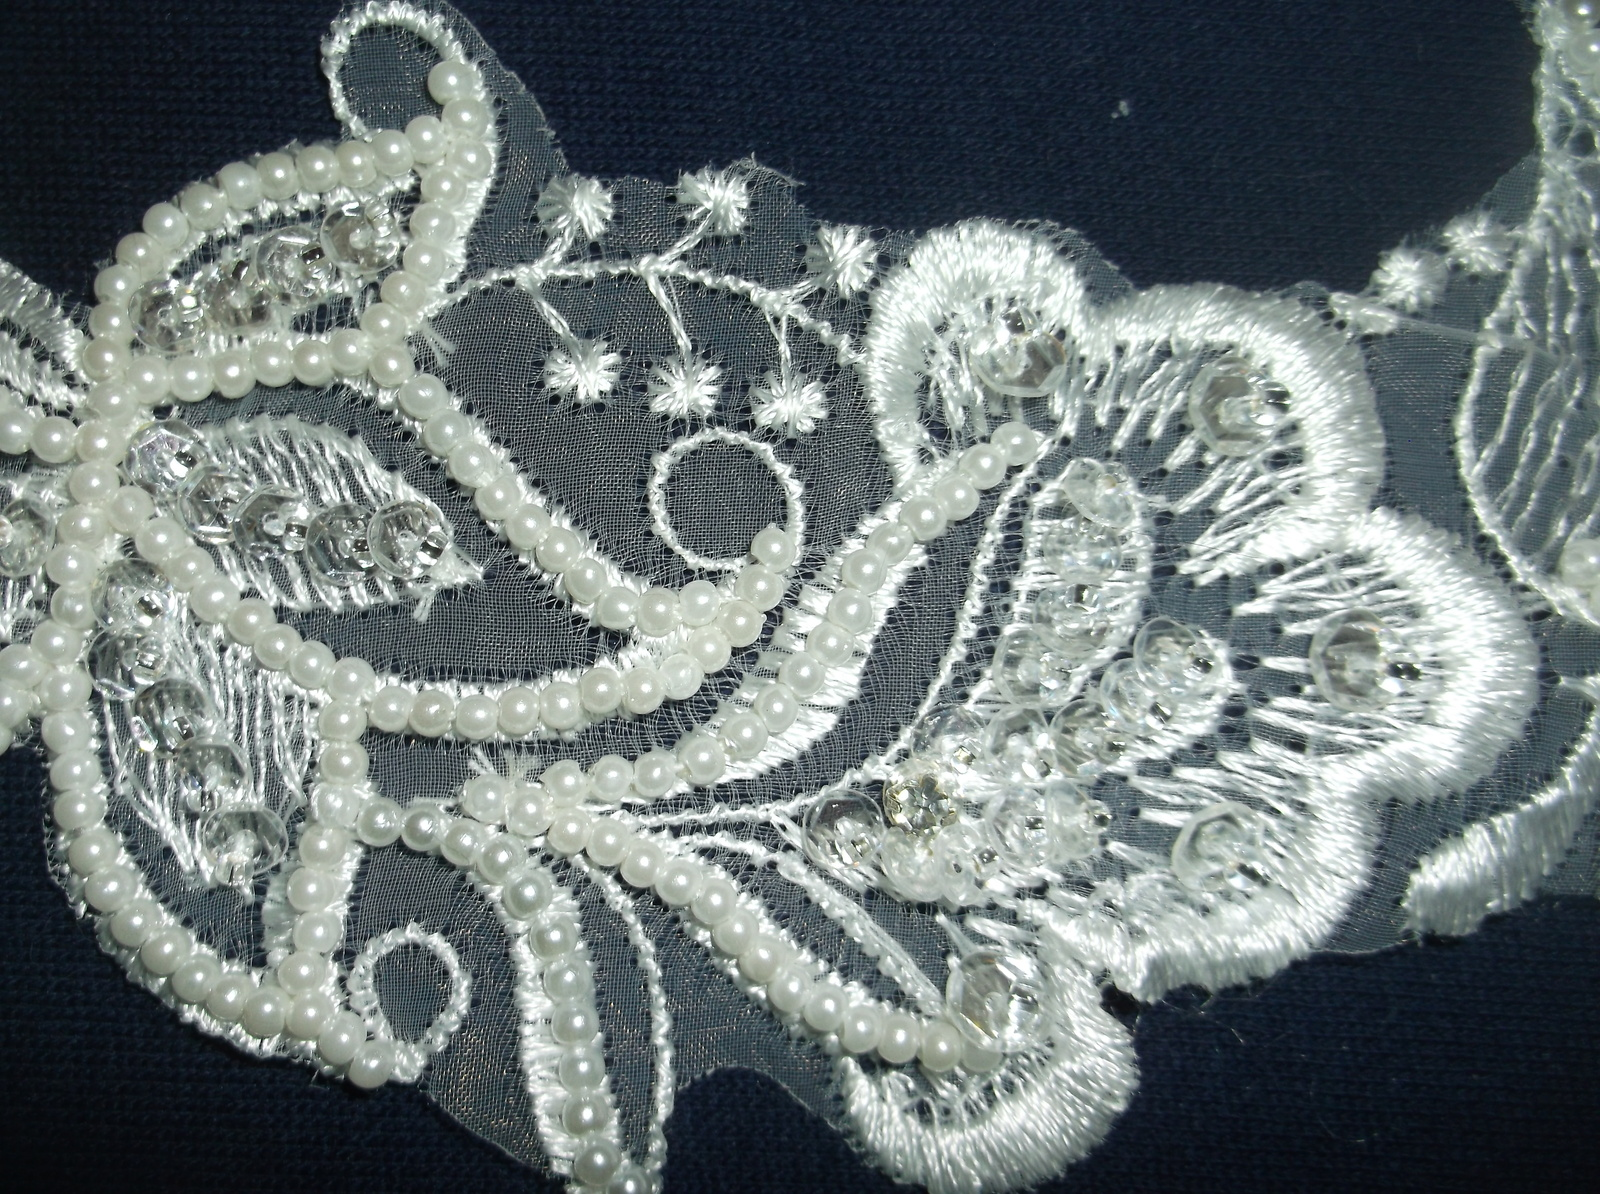 Apl bed silver single d beaded applique d on white net